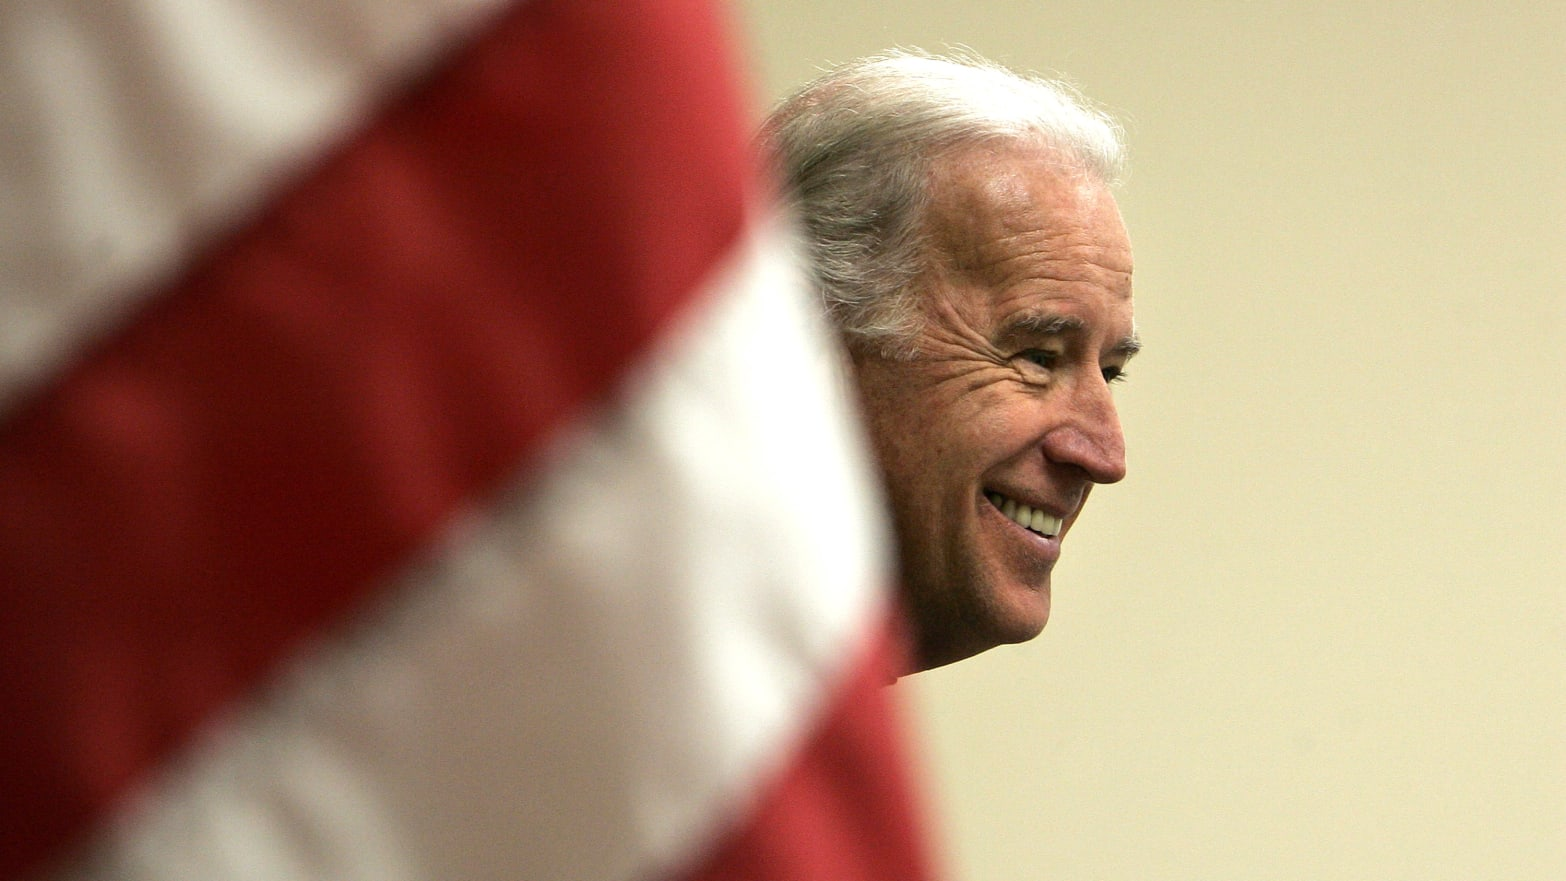 Biden Donors Backed His Charity as He Eyed 2020 Bid